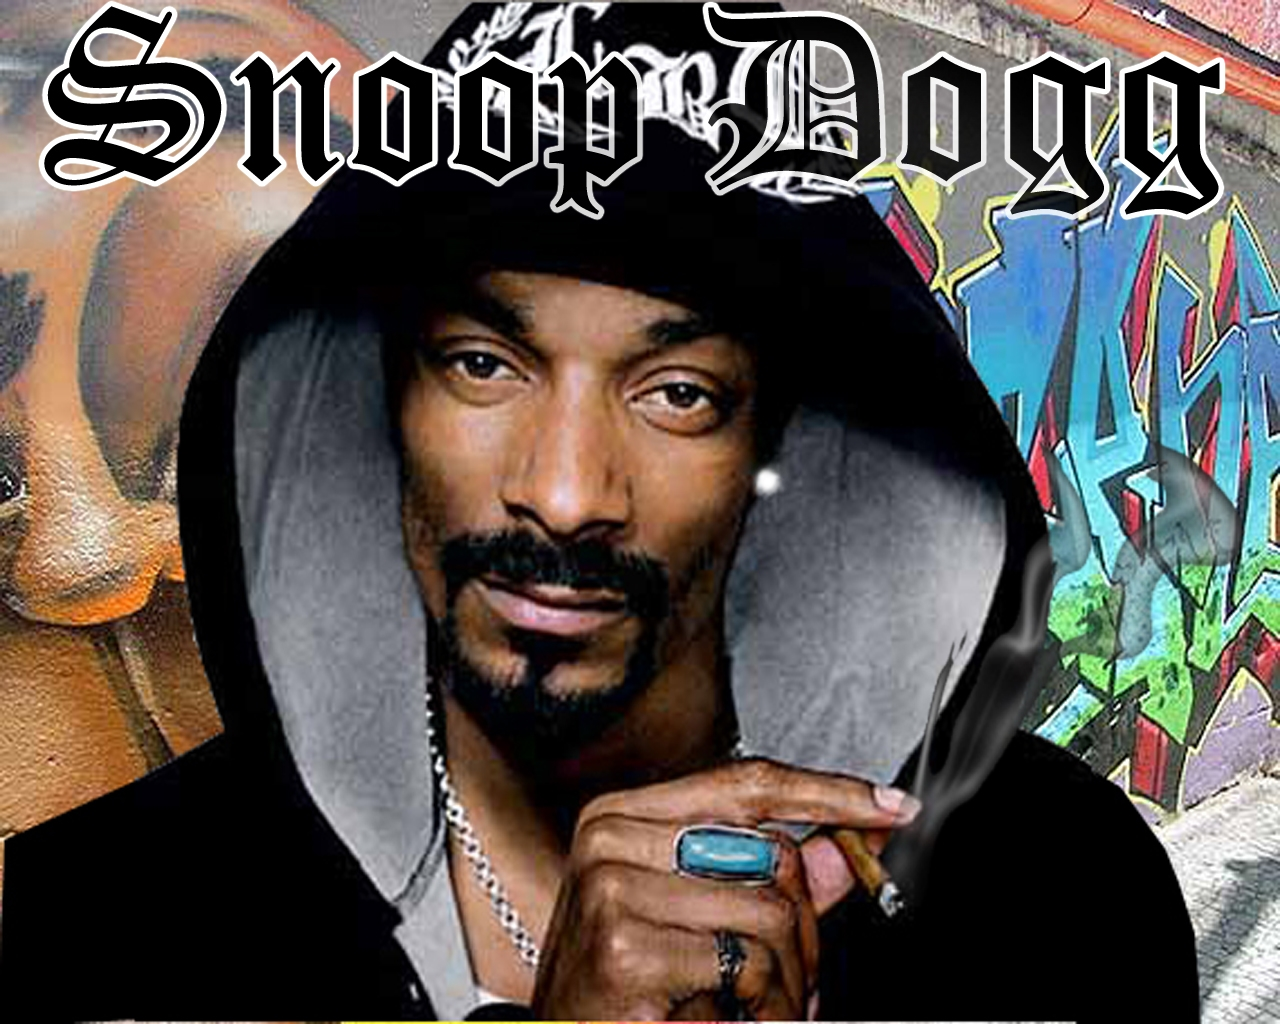 20131126194945_snoop-dogg-662747